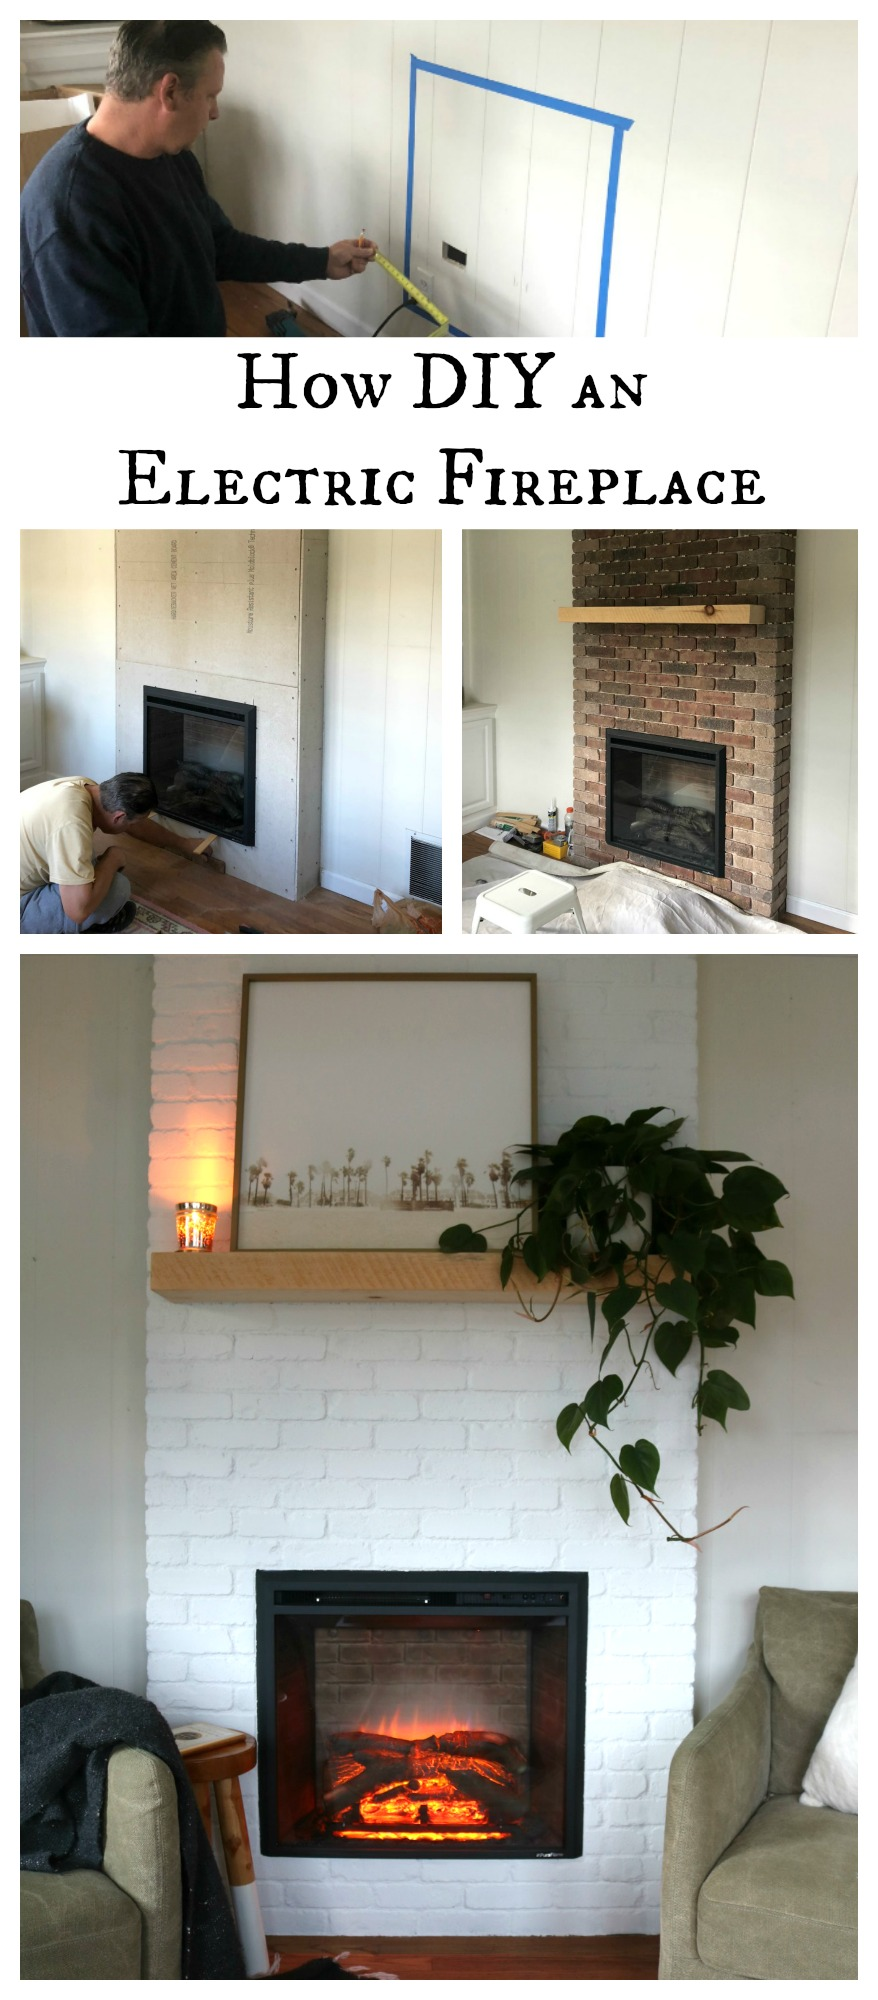 How to DIY an Electric Fireplace- Top Blog Posts